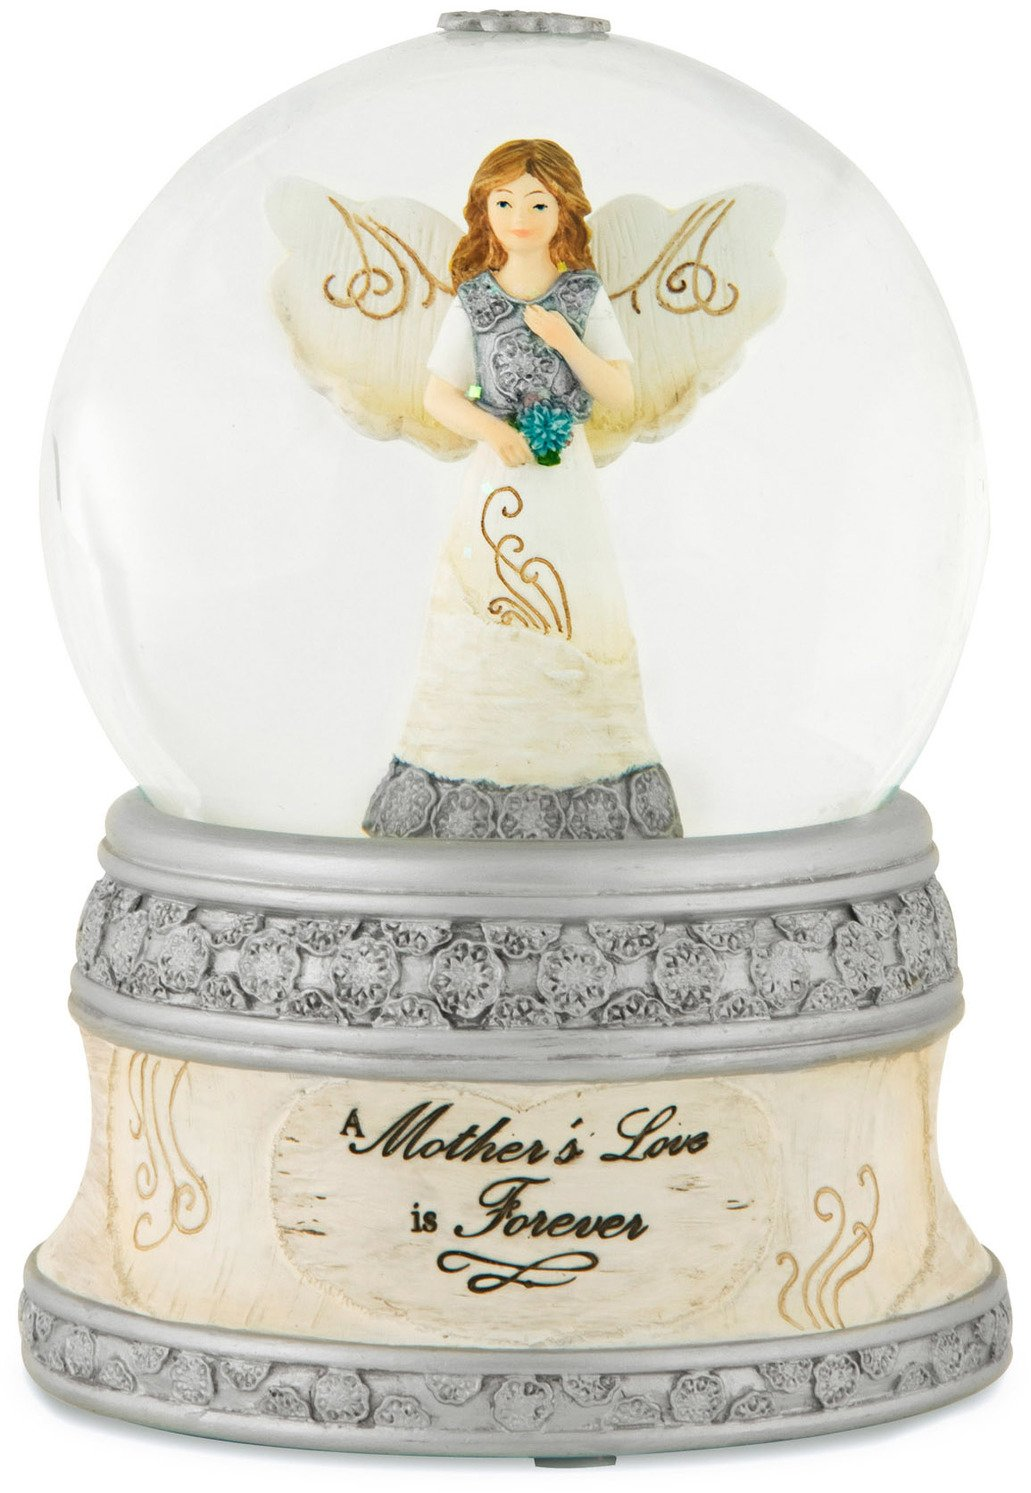 Pavilion Gift Company Elements 82329 100mm Musical Water Globe with Angel Figurine, A Mother's Love, 6-Inch